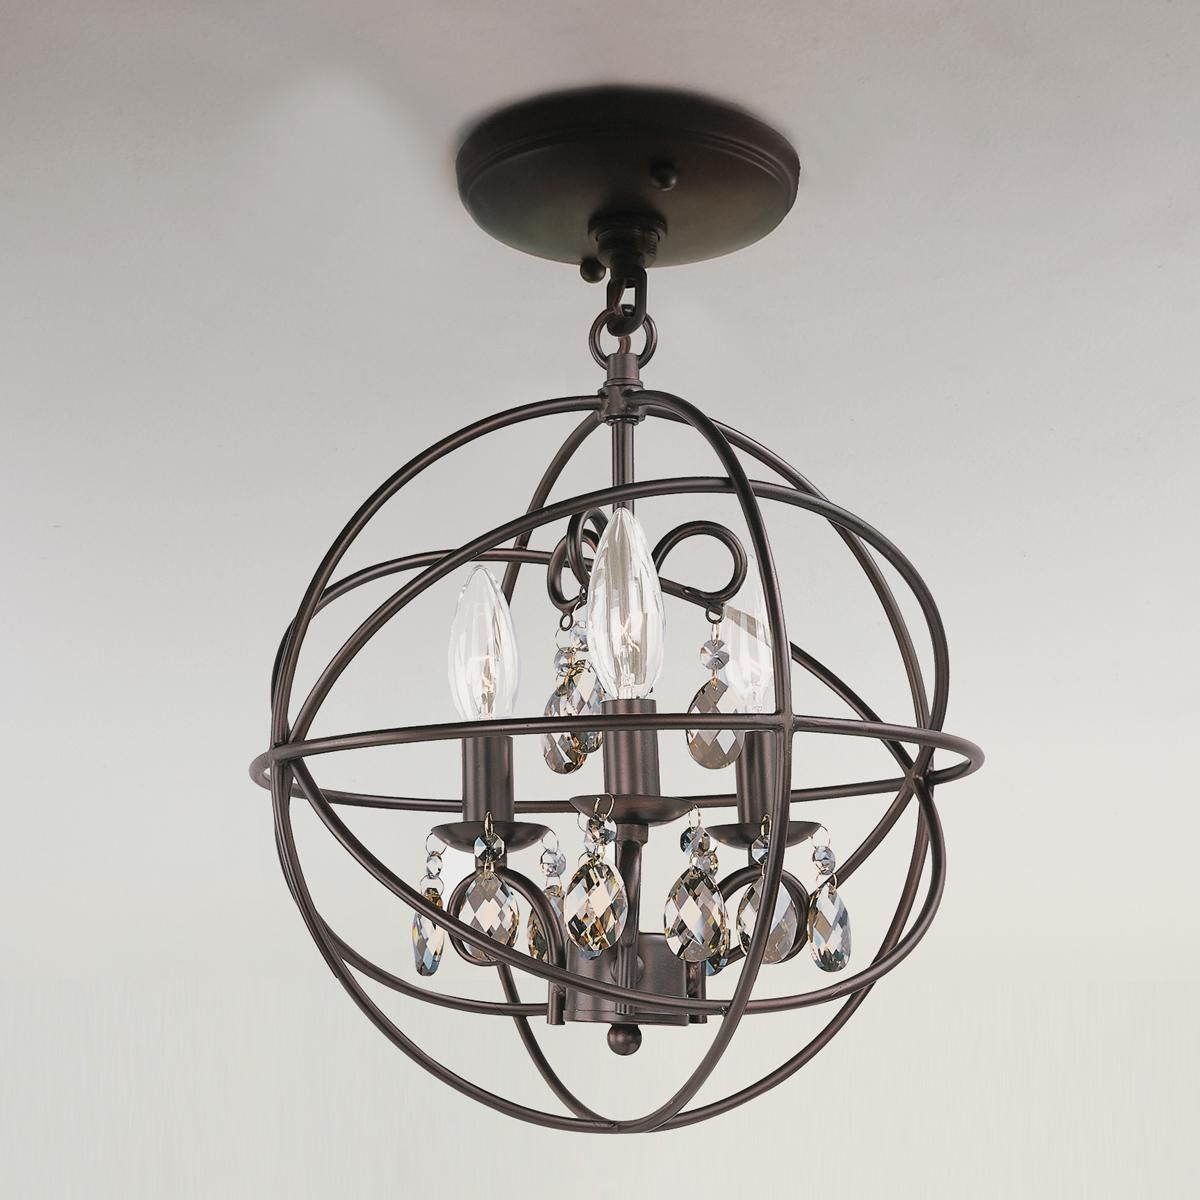 Master Intended For Fashionable La Sarre 3 Light Globe Chandeliers (View 14 of 20)